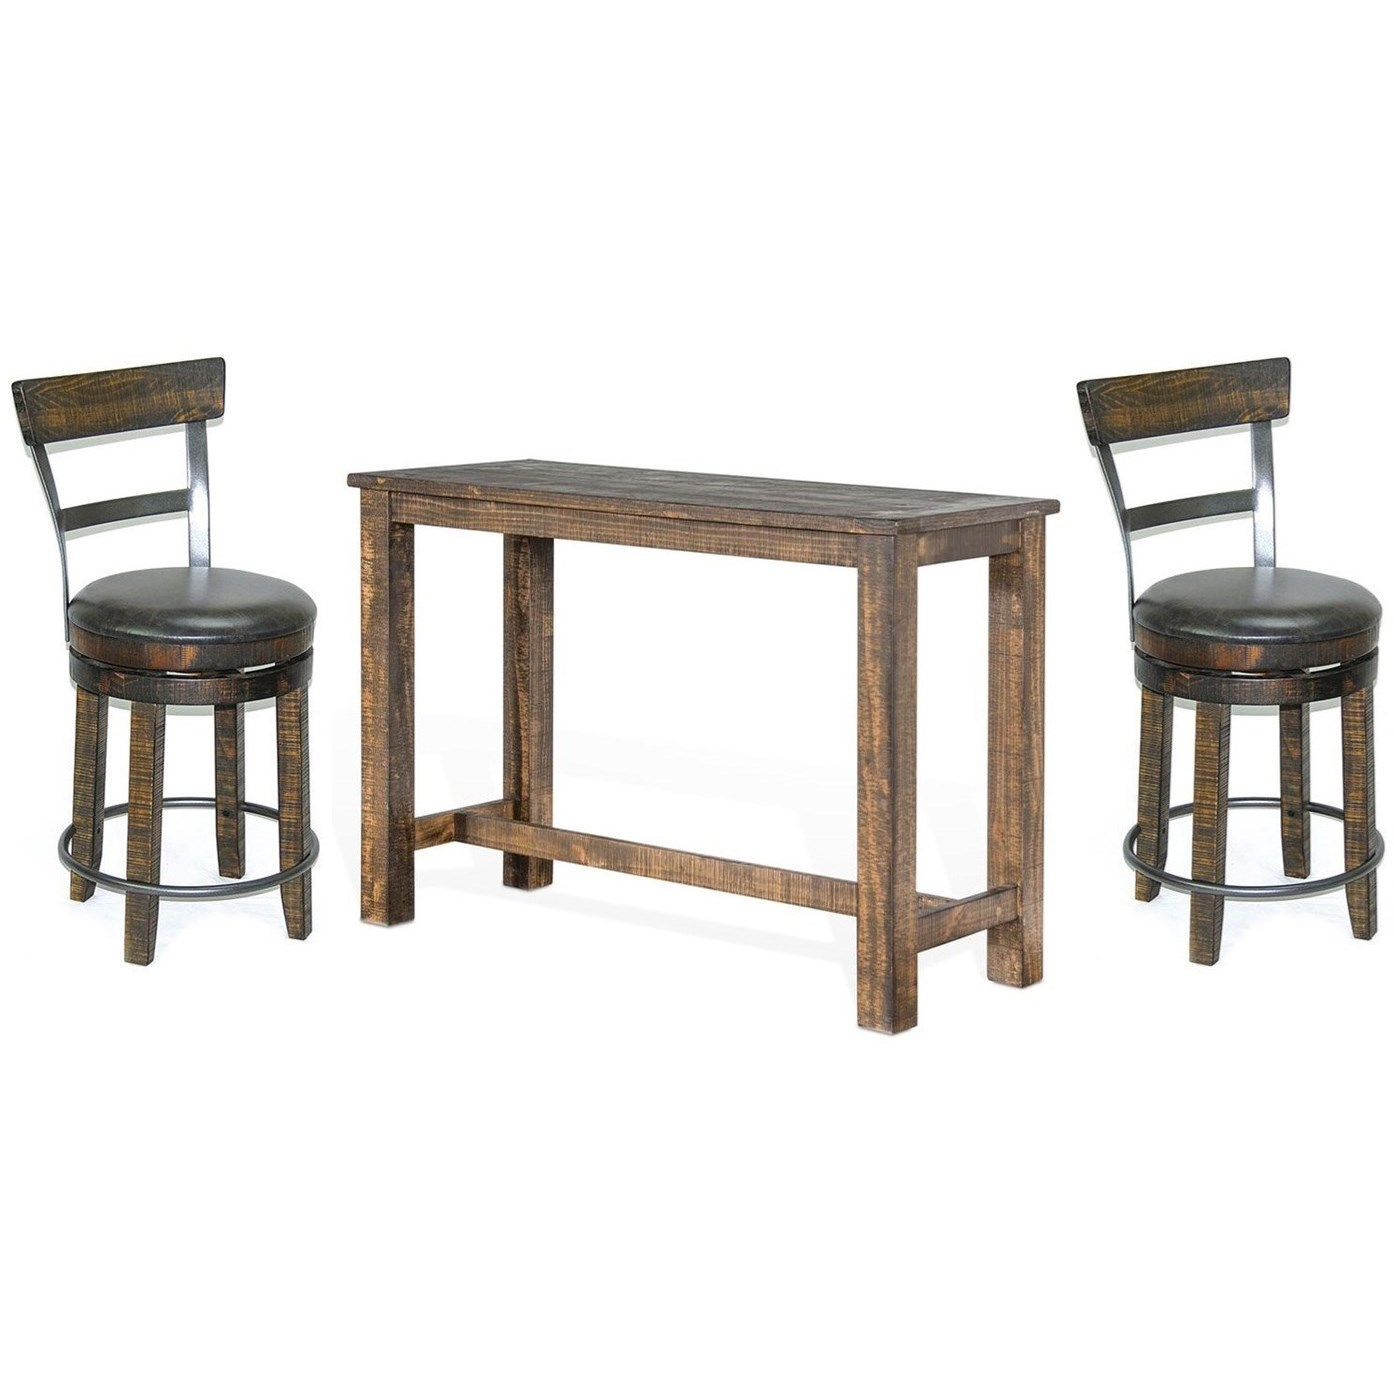 Bar Height Table And Chairs Metro Flex 3 Piece Bar Height Table Set With Distressed Finish By Sunny Designs At John V Schultz Furniture